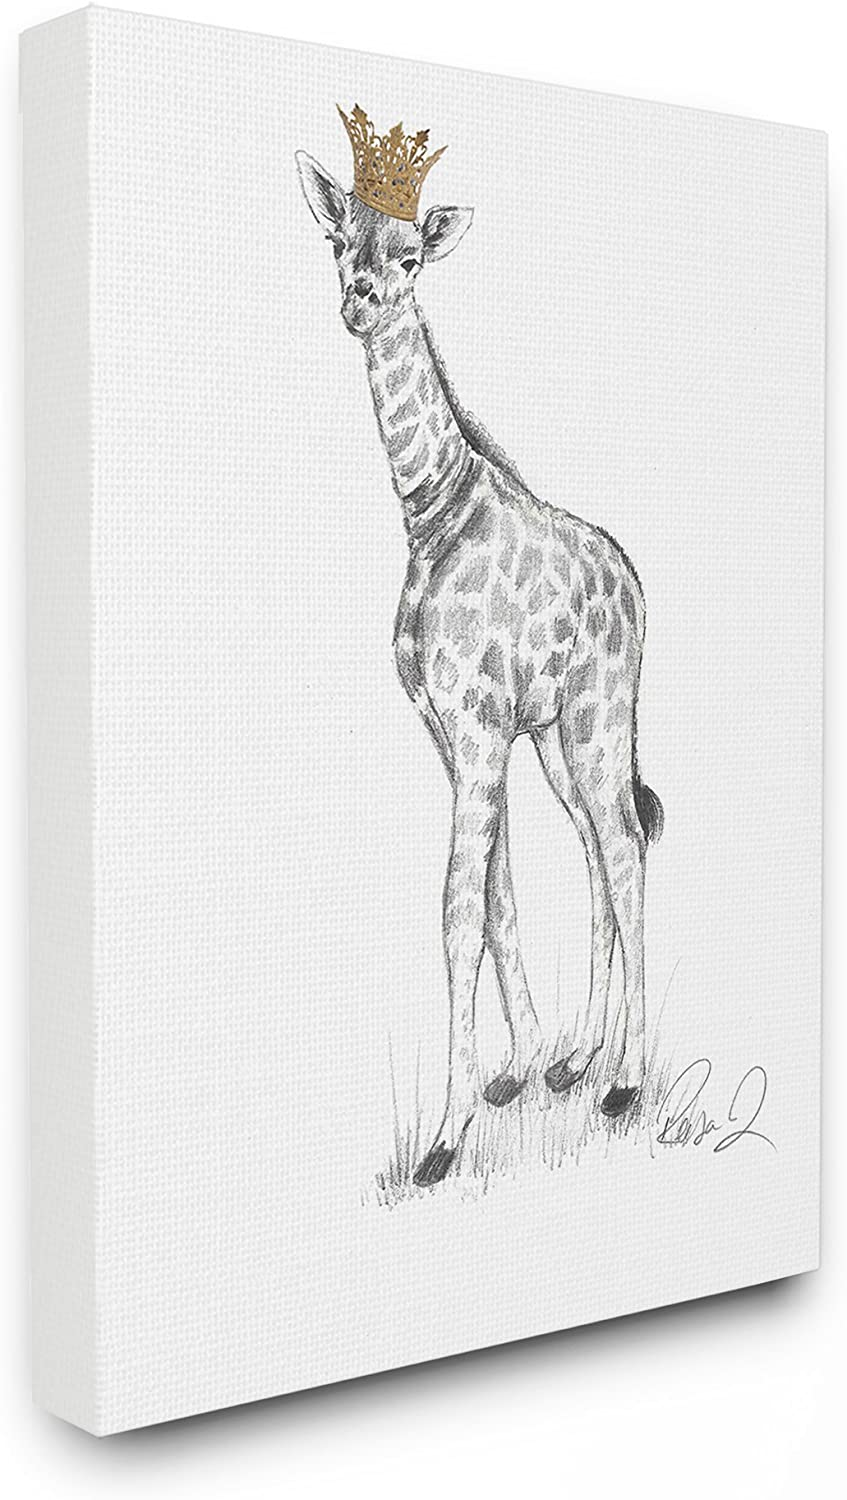 30 x 40 Multicolor The Stupell Home Decor Collection Giraffe Royalty Graphite Drawing Stretched Canvas Wall Art